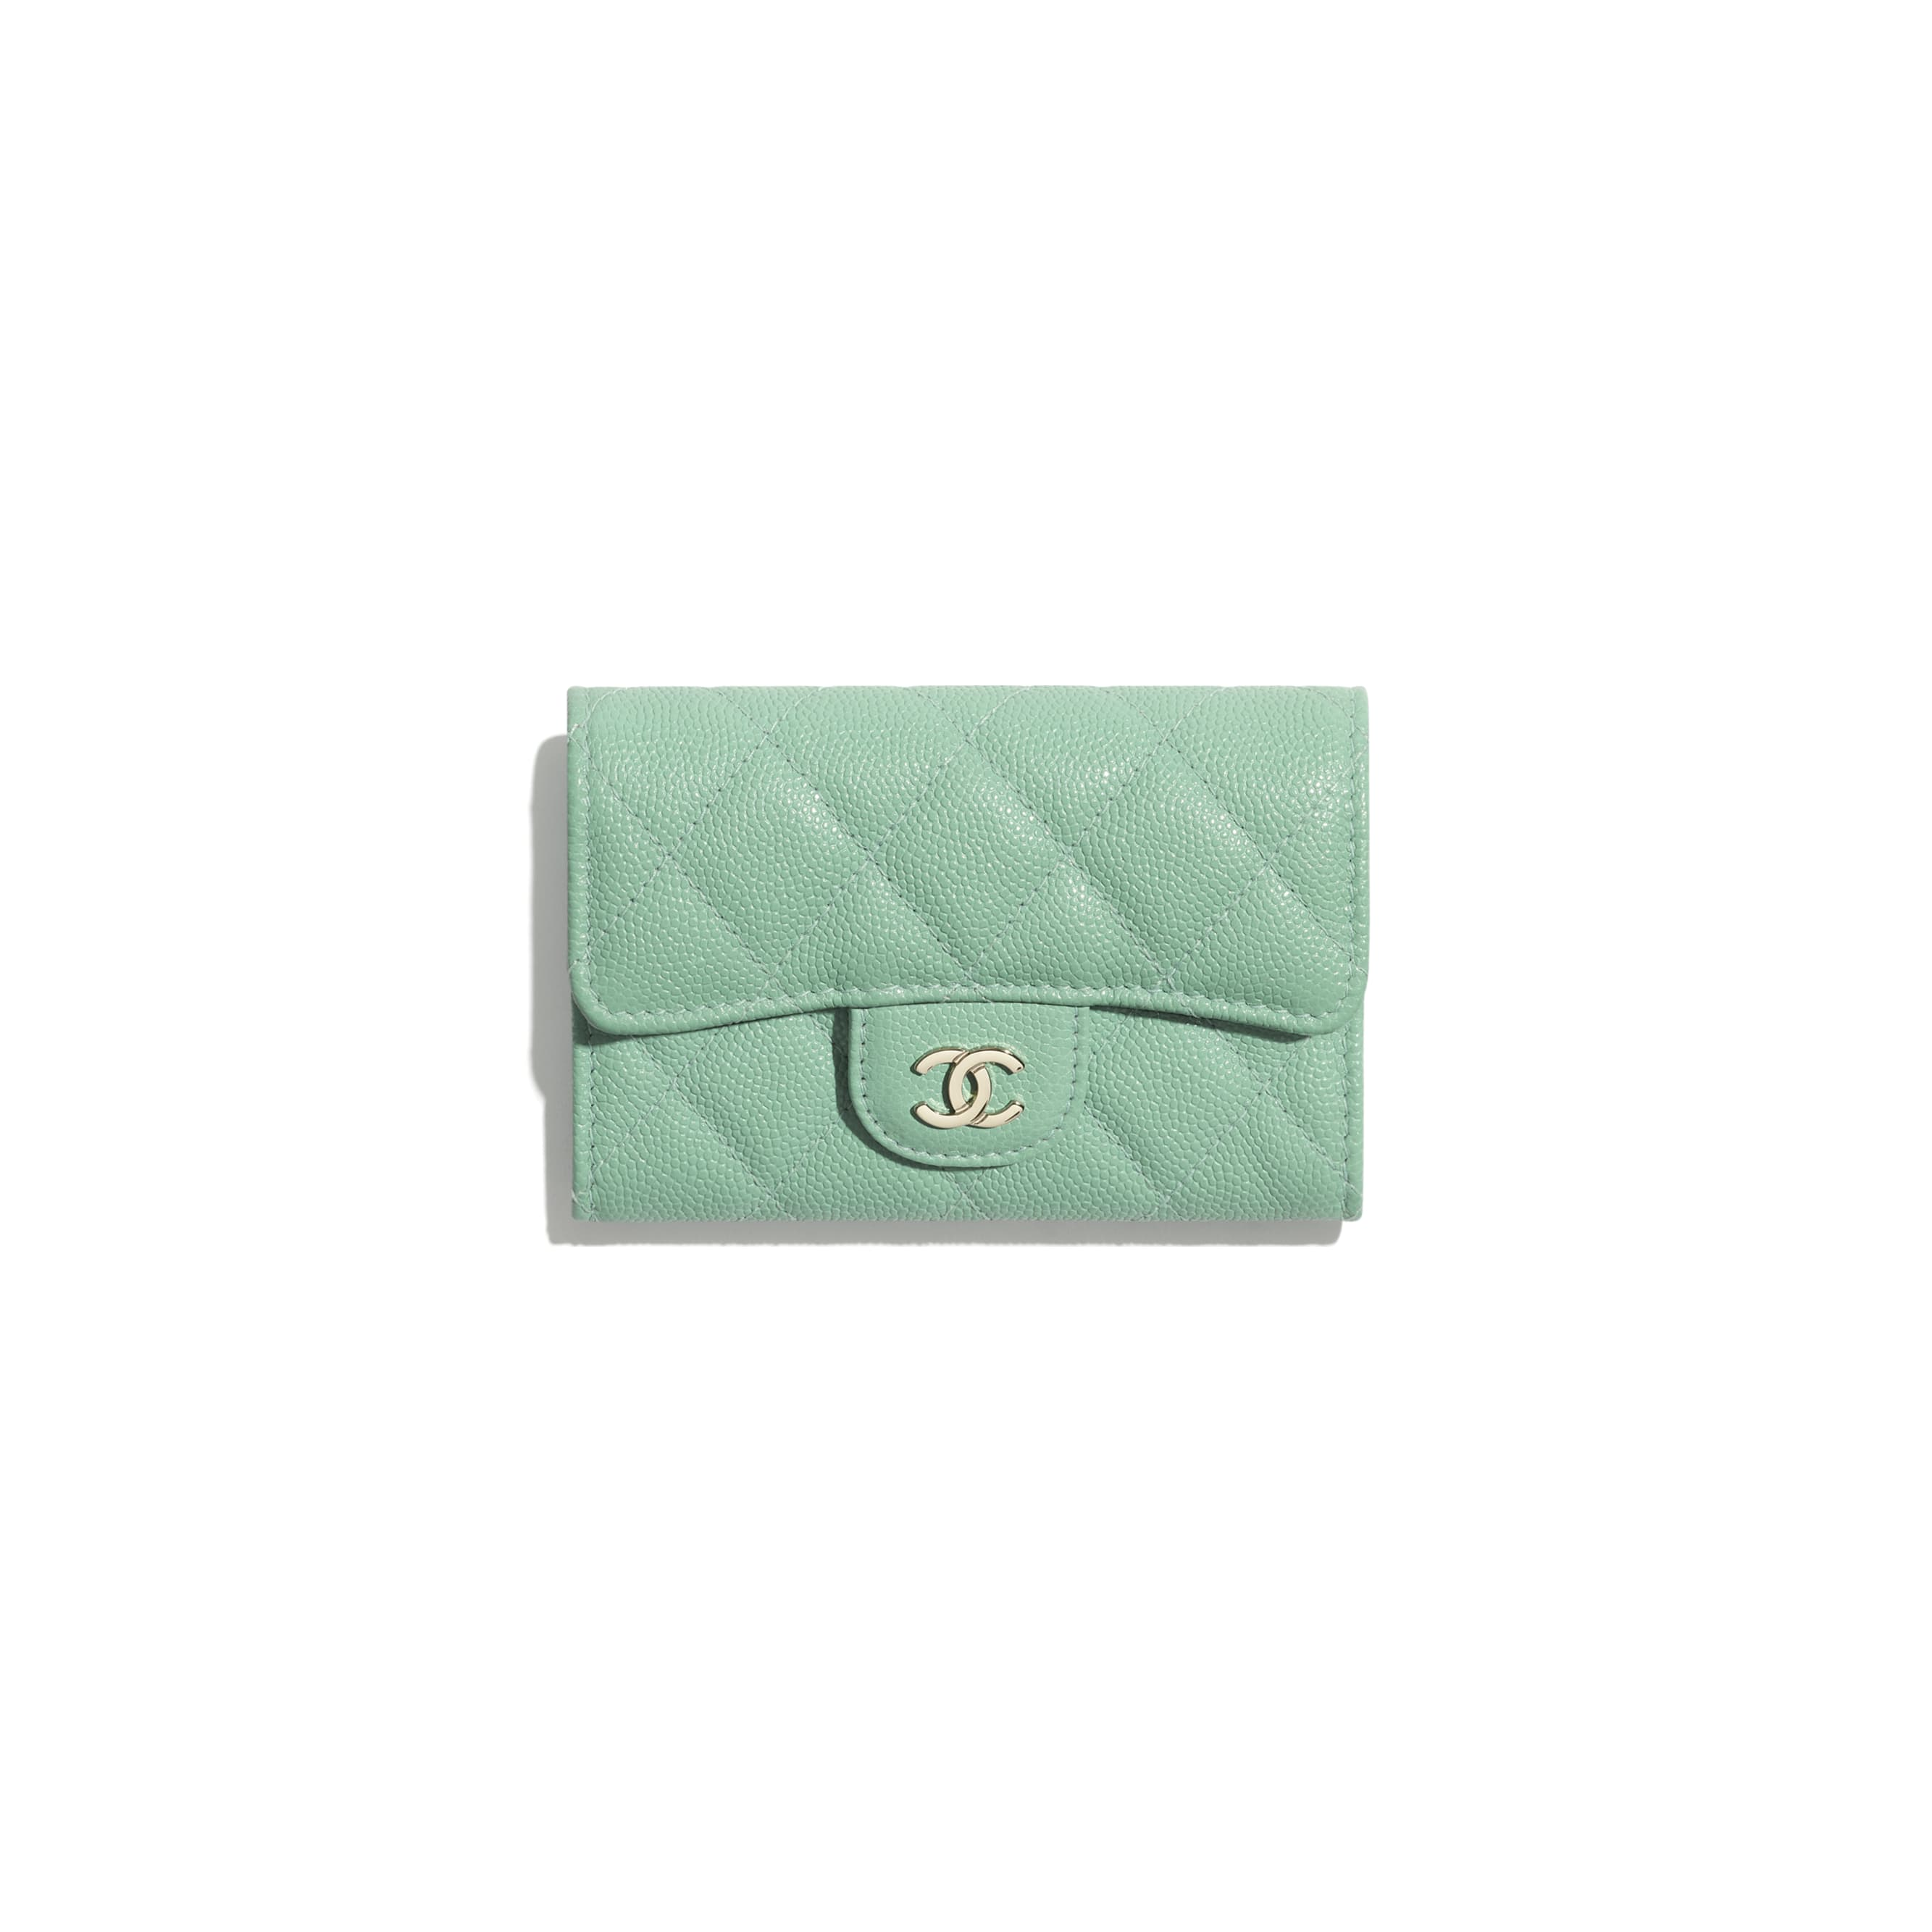 Classic Card Holder - Green - Grained Calfskin & Gold-Tone Metal - CHANEL - Default view - see standard sized version